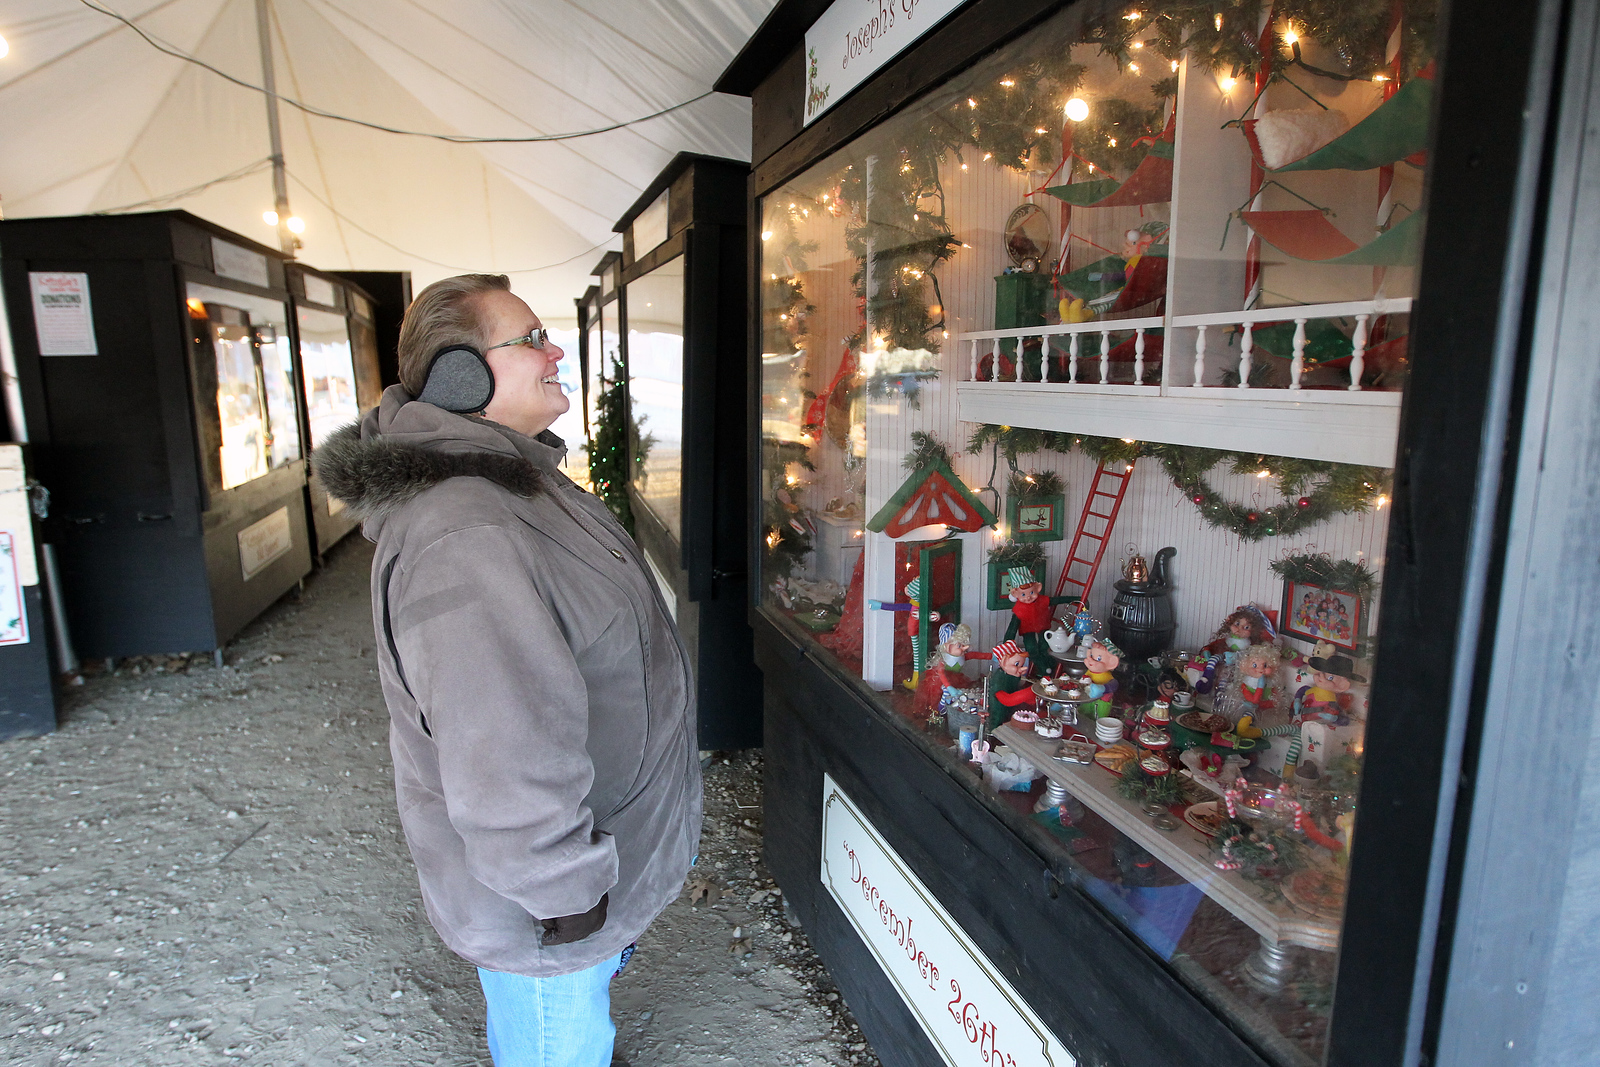 """Candace H. Johnson-For Shaw Media Pam Jacobs, of Gurnee looks at her favorite oversized shadow box titled, """"December 26th,"""" at the Kringle's Christmas Village display in downtown Antioch. (12/23/17)"""